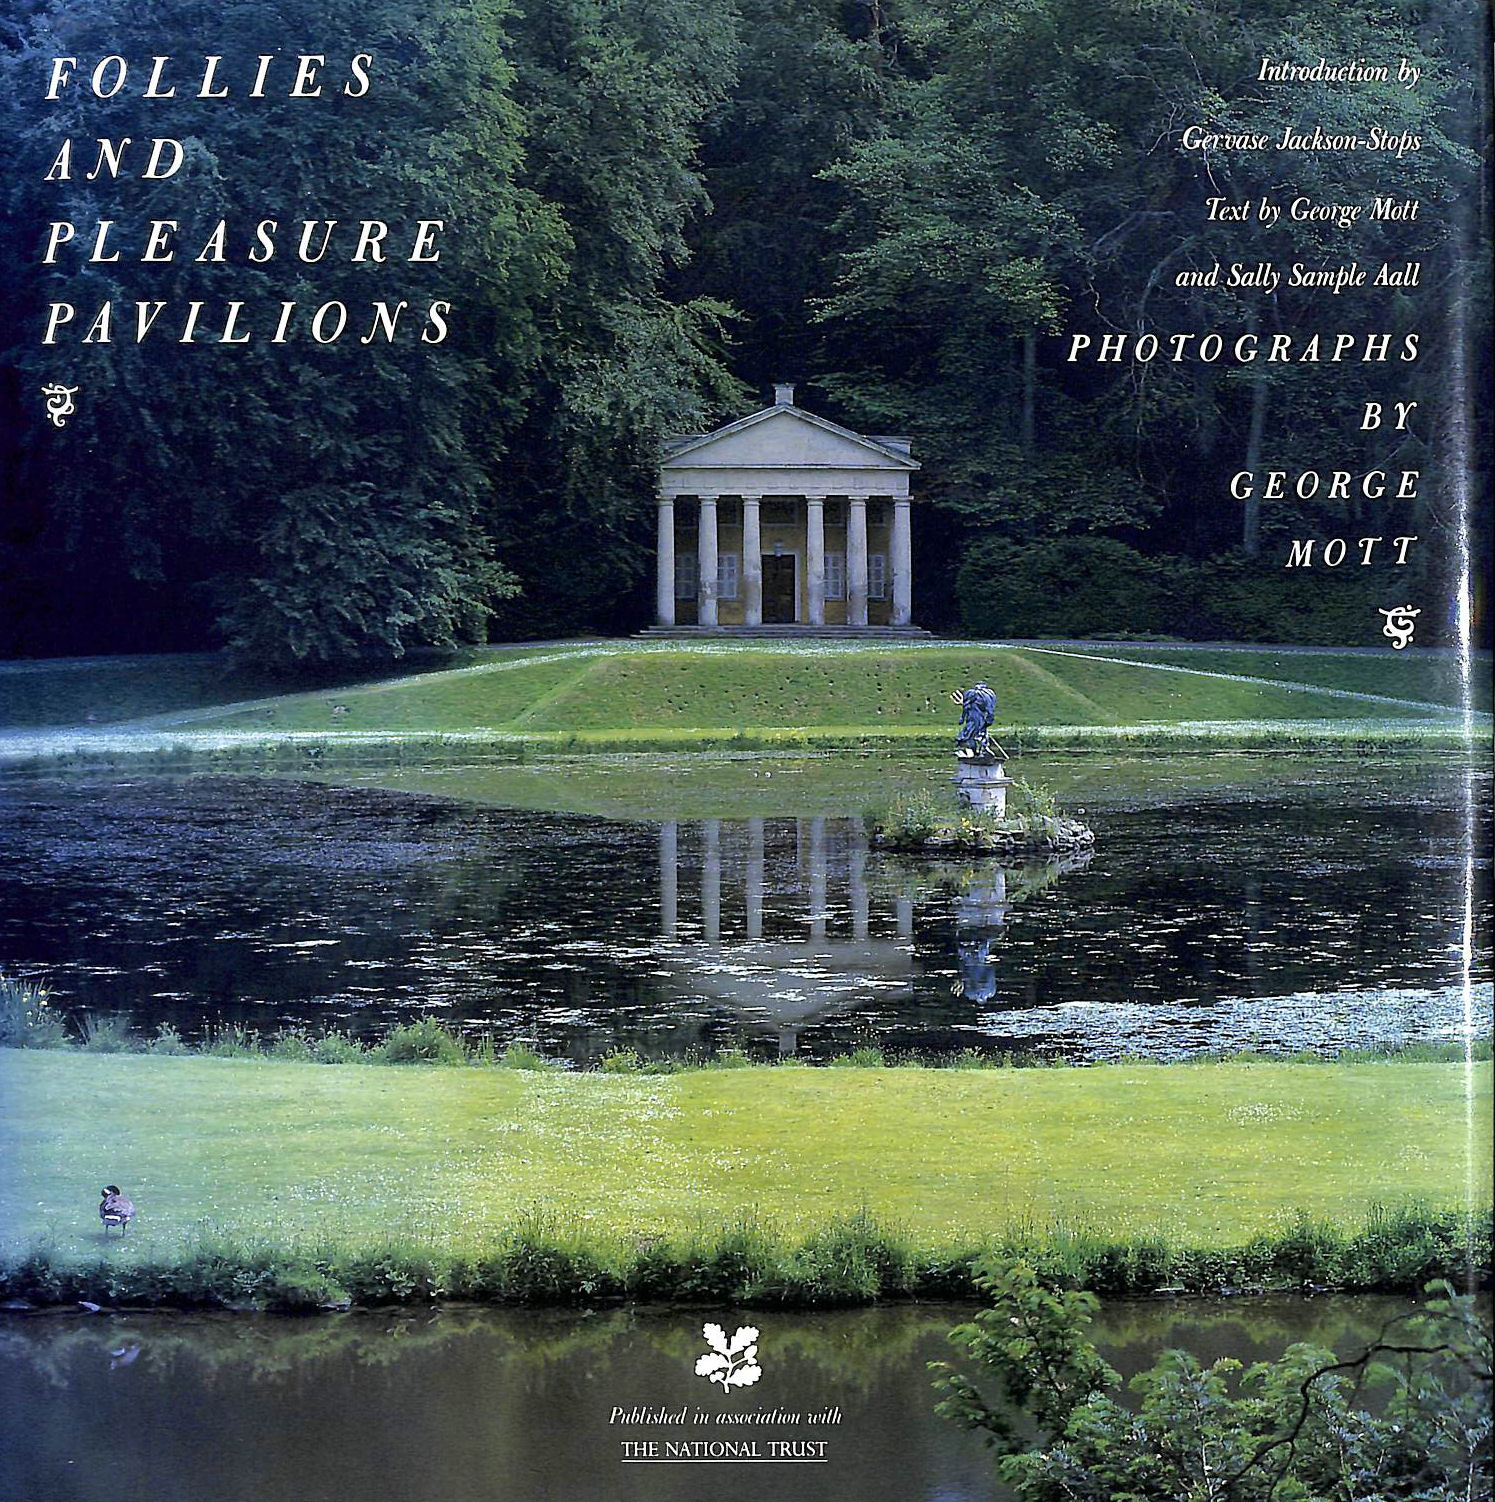 Image for FOLLIES and PLEASURE PAVILIONS